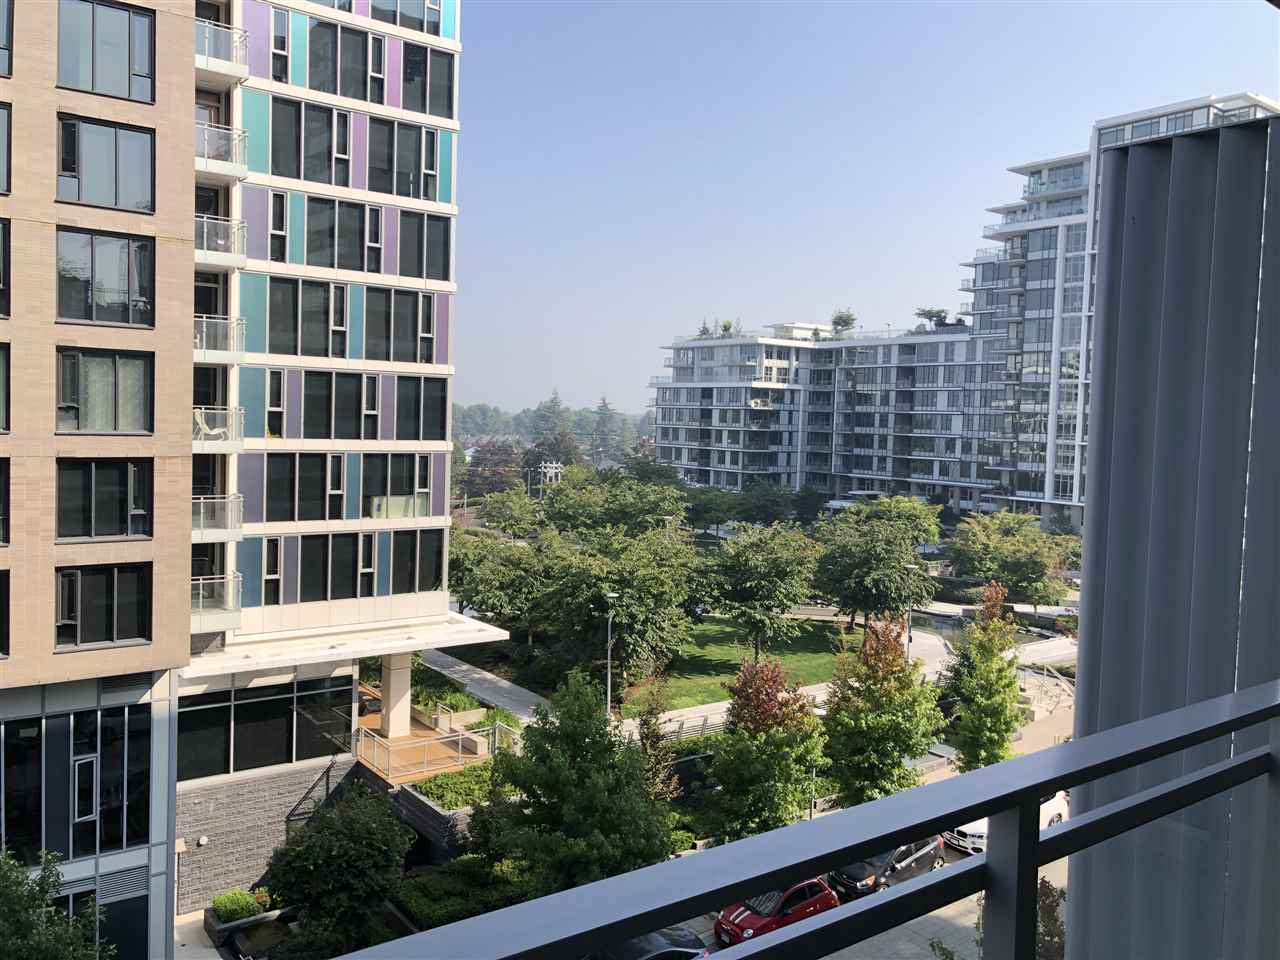 805 3233 KETCHESON ROAD - West Cambie Apartment/Condo for sale, 1 Bedroom (R2495647) - #11